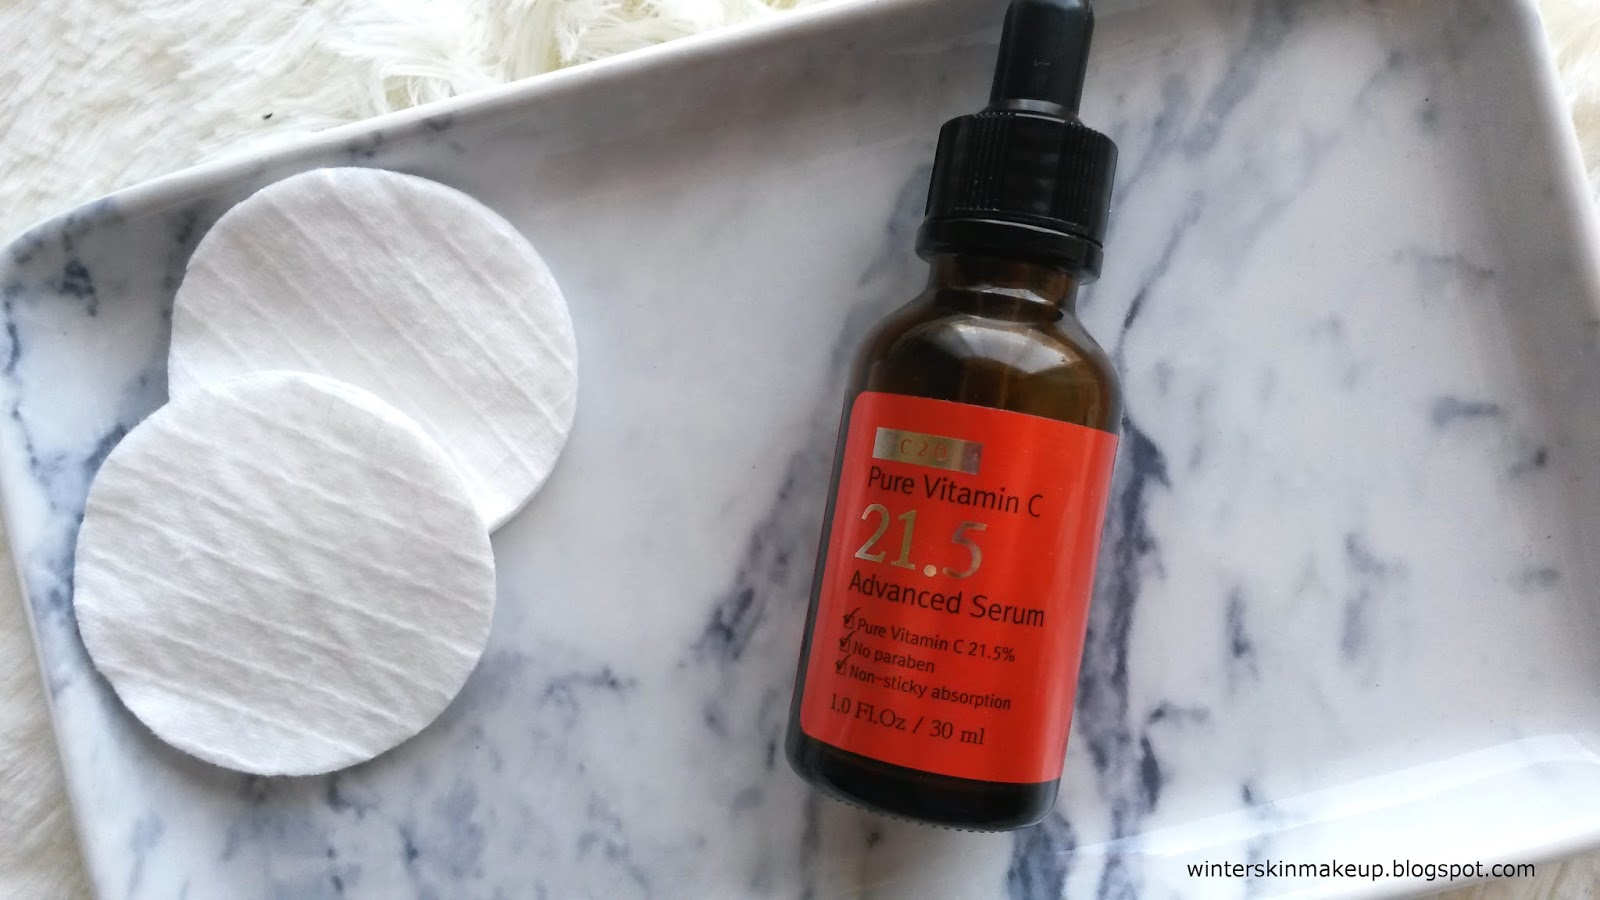 Pure Vitamin C-21.5 Advanced Serum review